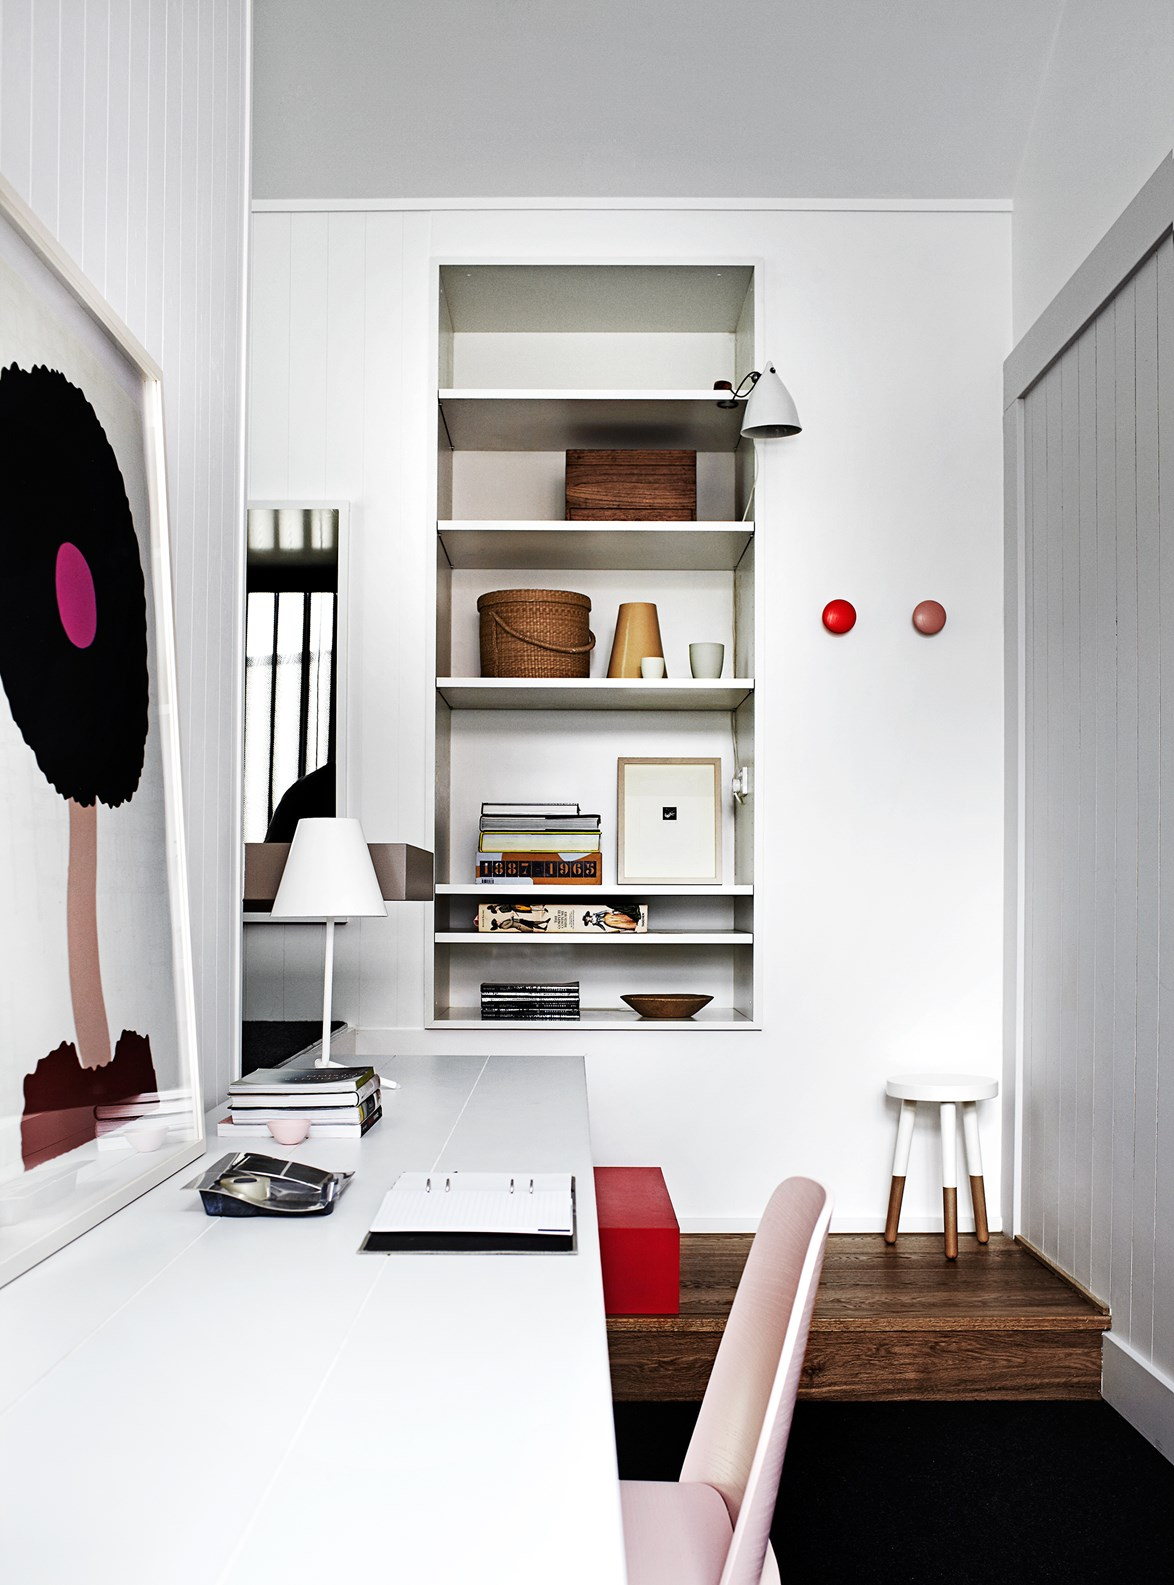 """With a monochrome base and distinct Scandinavian aesthetic, the gorgeous Melbourne [home of Whiting Architects' Steven and Carole Whiting](https://www.homestolove.com.au/architects-at-home-steven-and-carole-whiting-2560